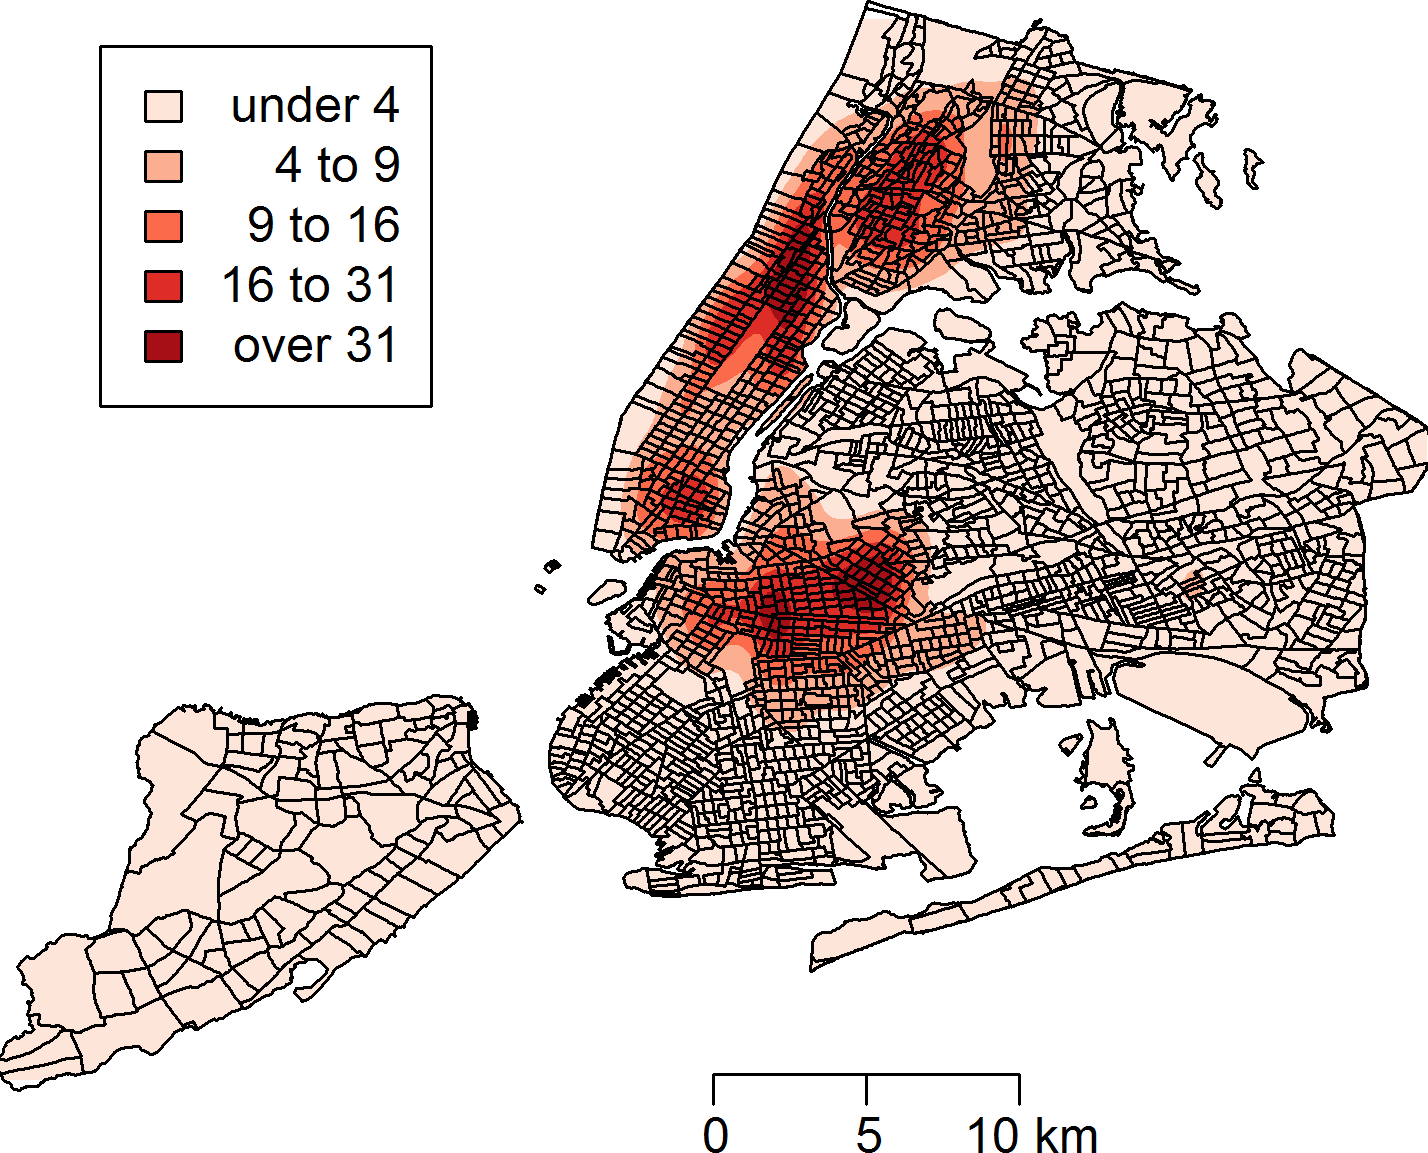 Rat Sightings In New York City Are Associated With Neighborhood - Nyc rat map